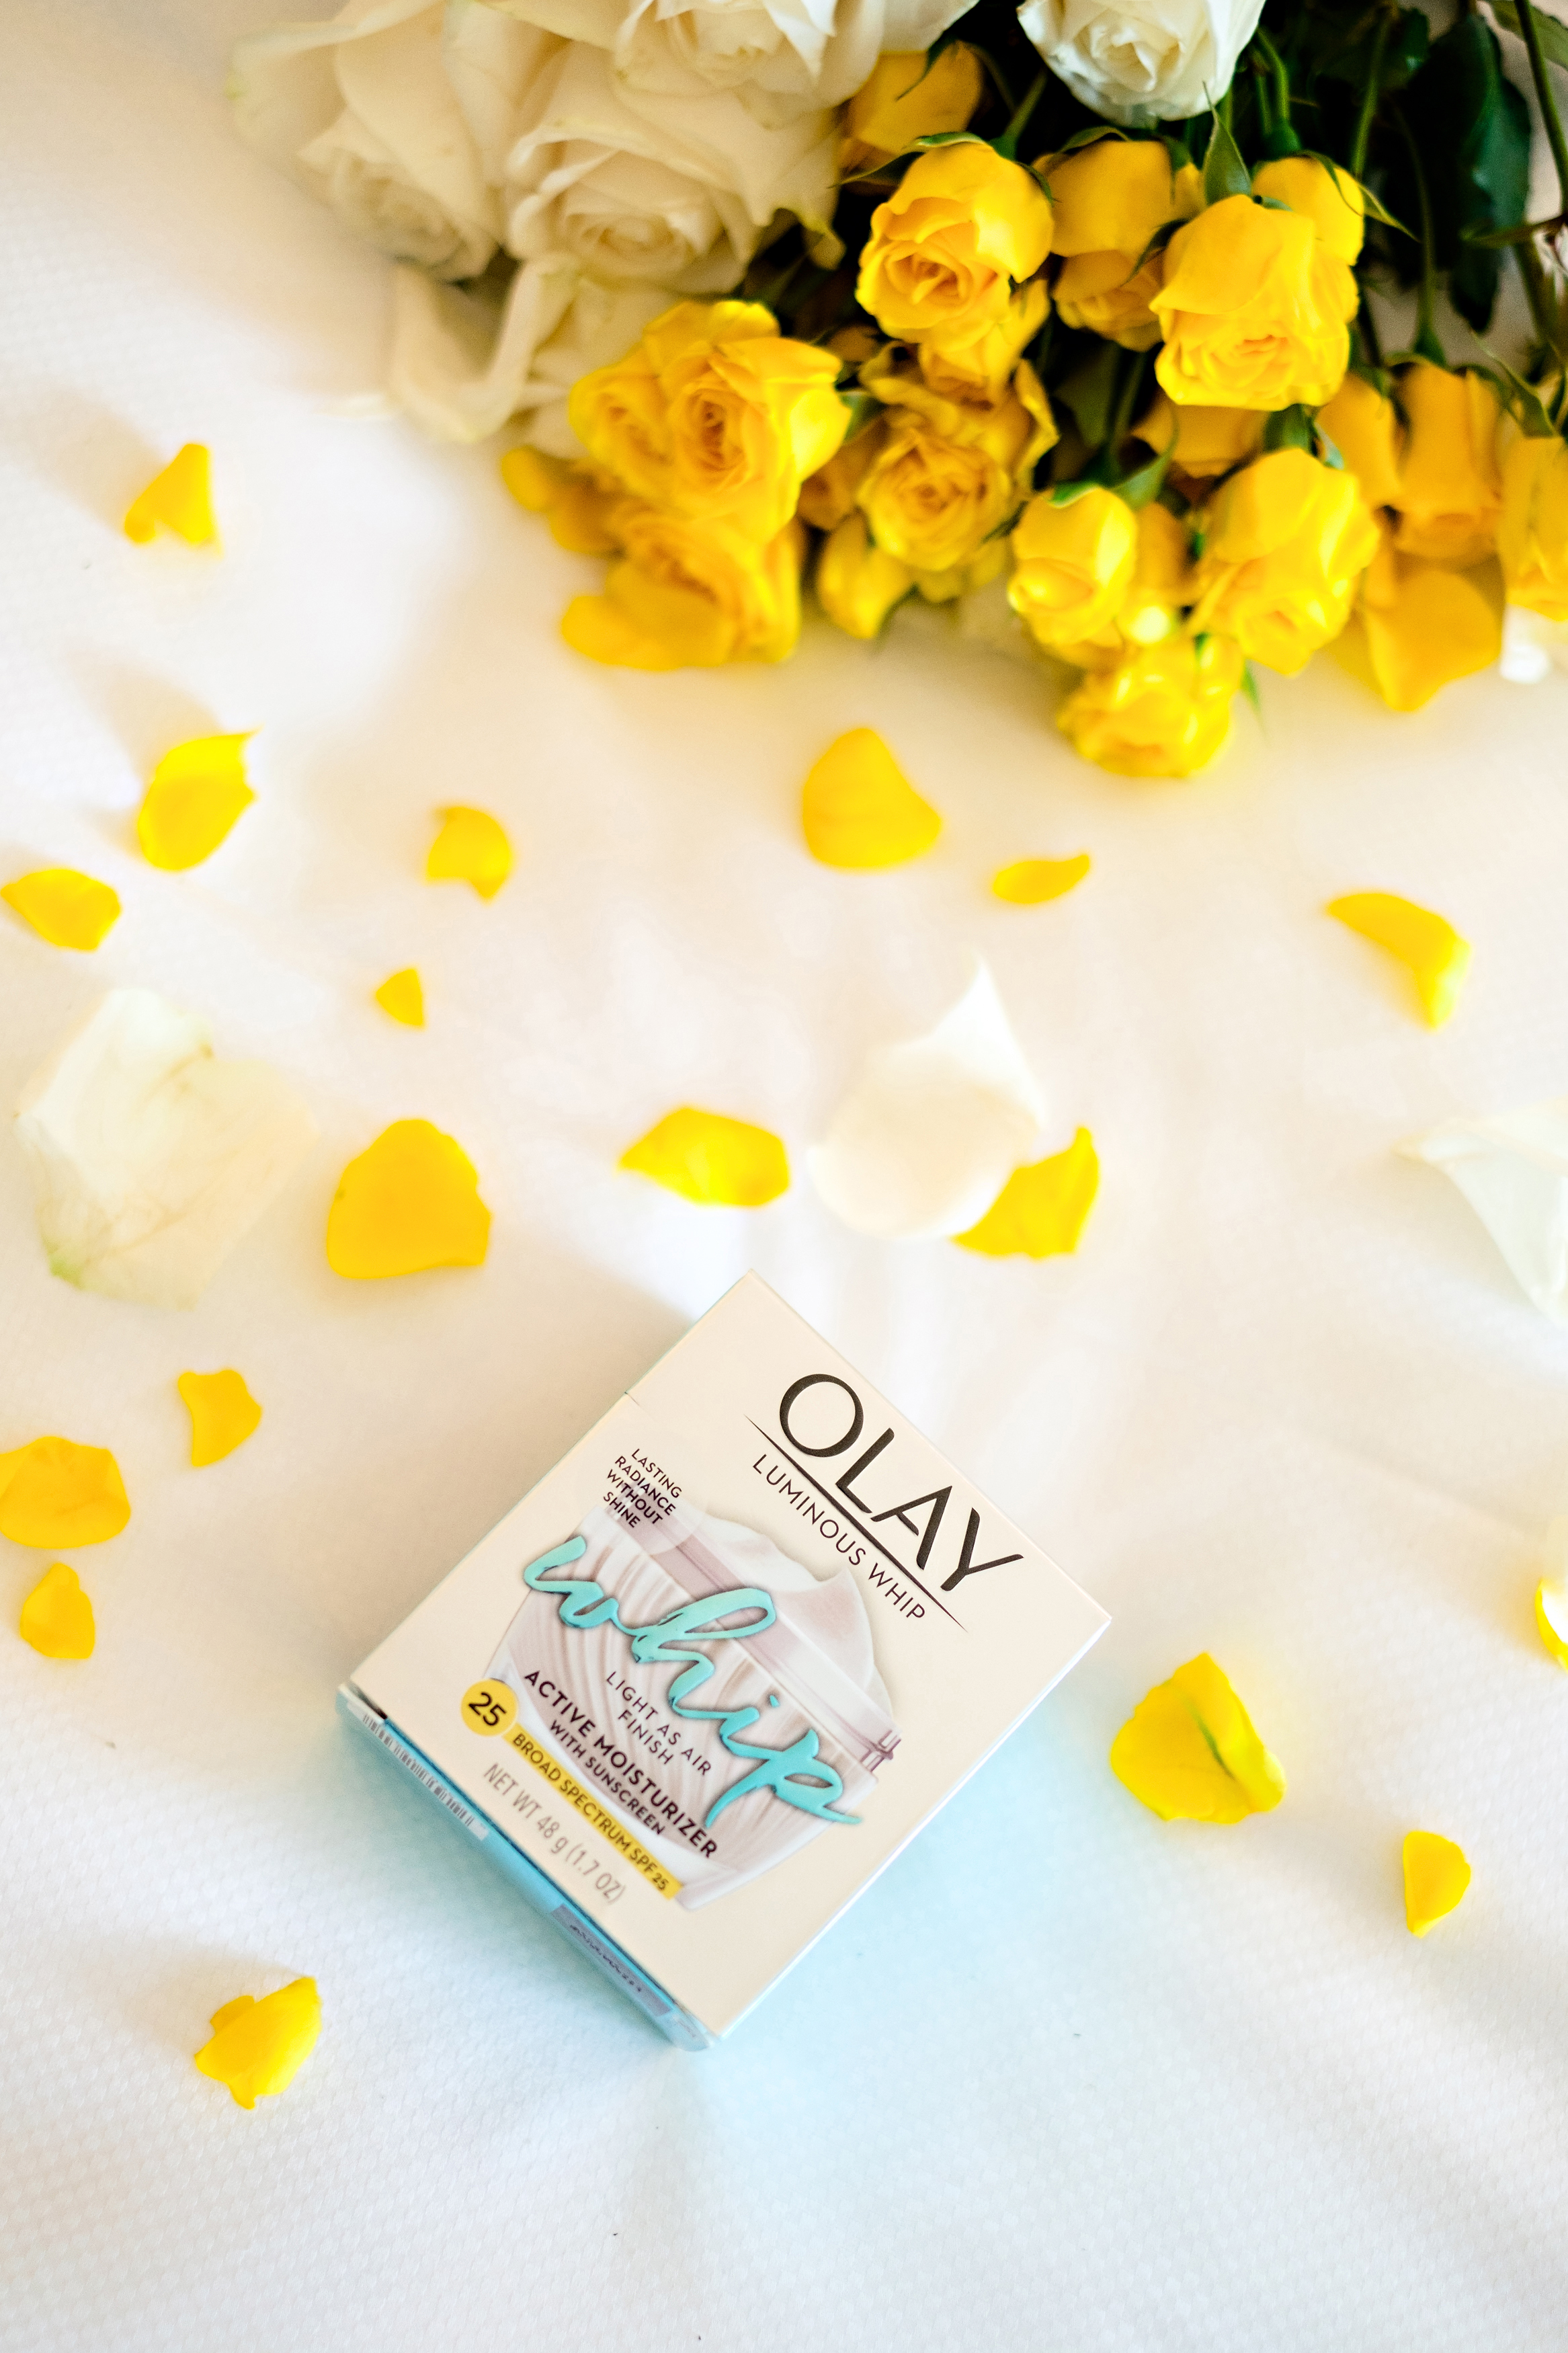 Bookmark this post ASAP! SPF | Cream | Walmart | Healthy Skin | Easy Skincare Routine with Olay featured by popular Atlanta beauty blogger Happily Hughes